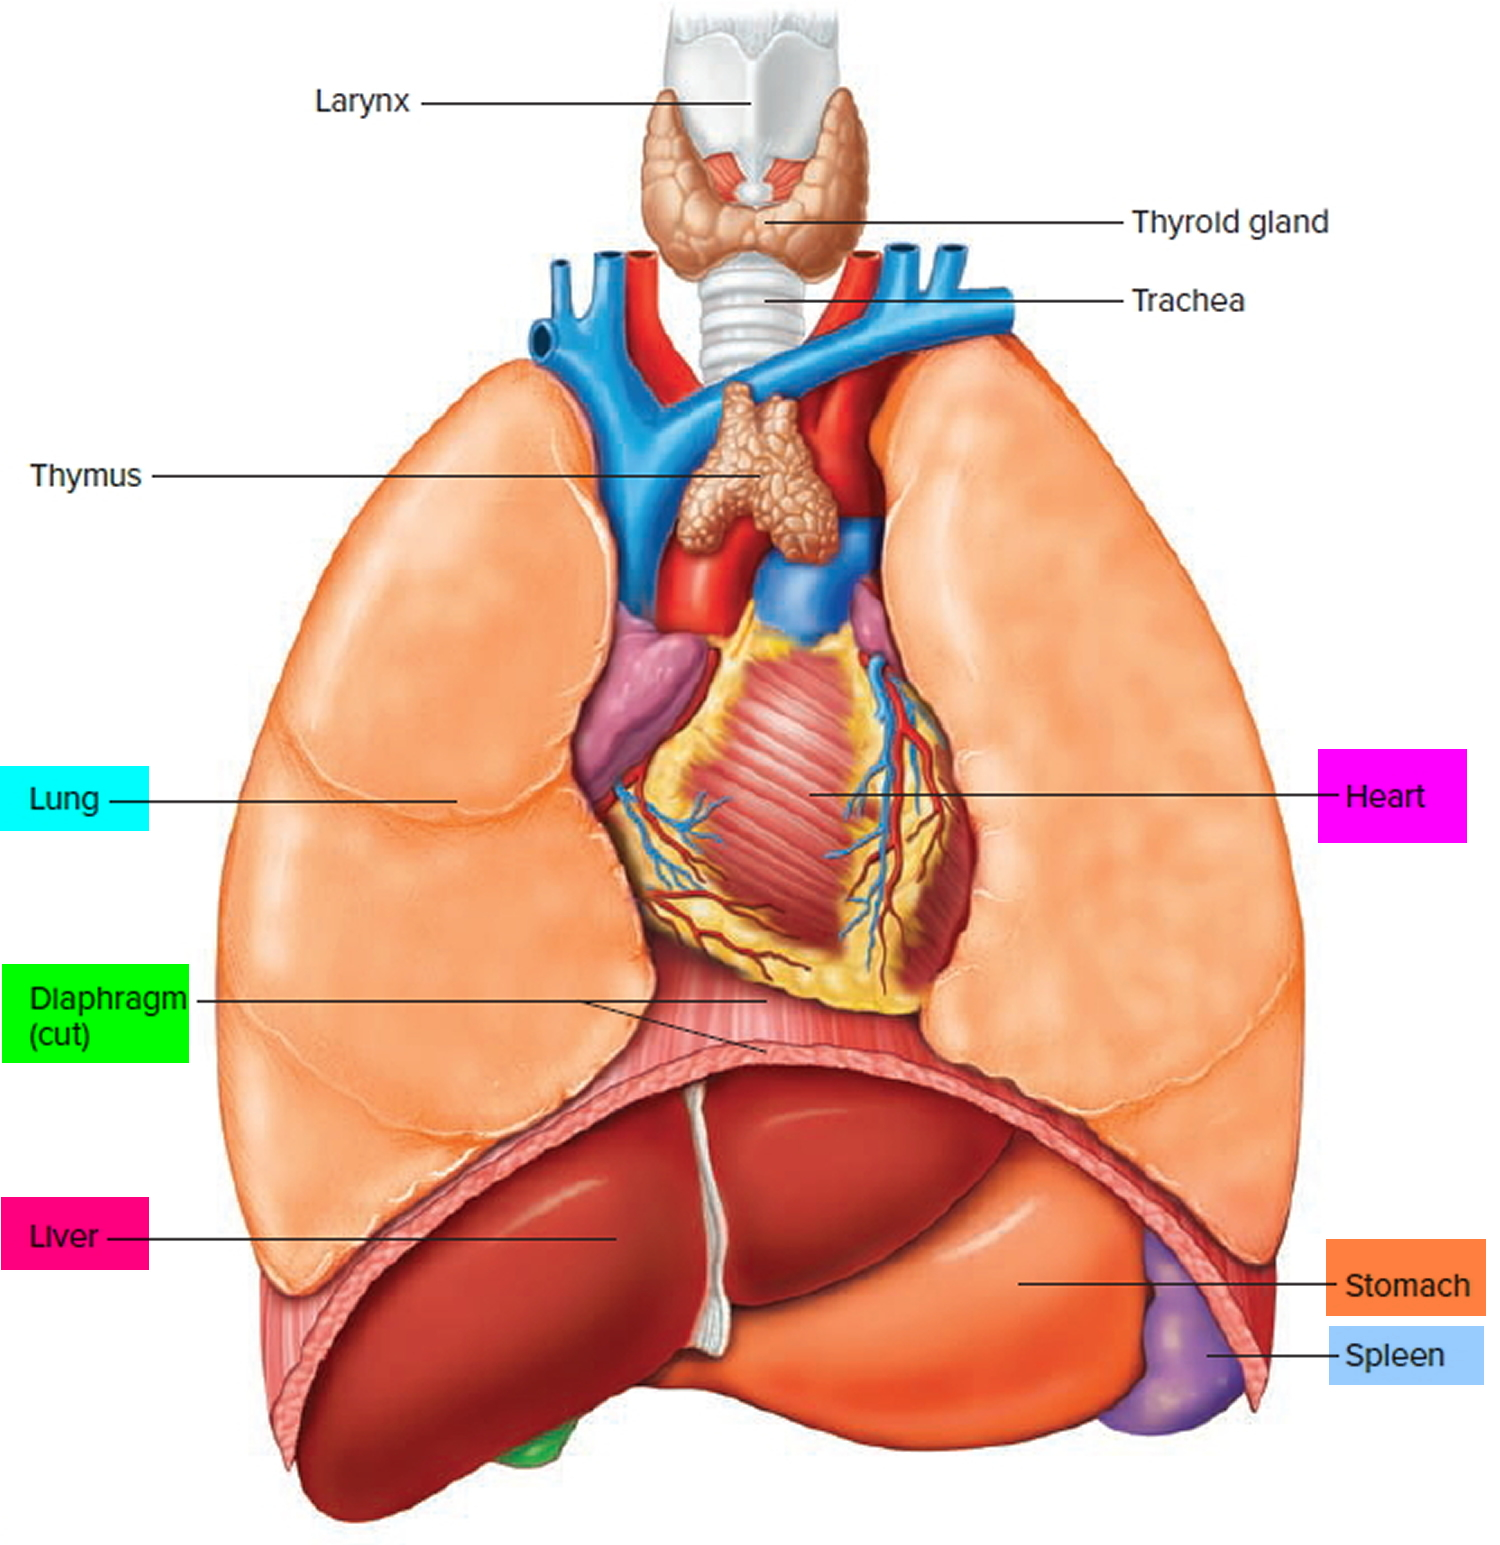 Diaphragm Muscle Diaphragm Location Function Of The Diaphragm